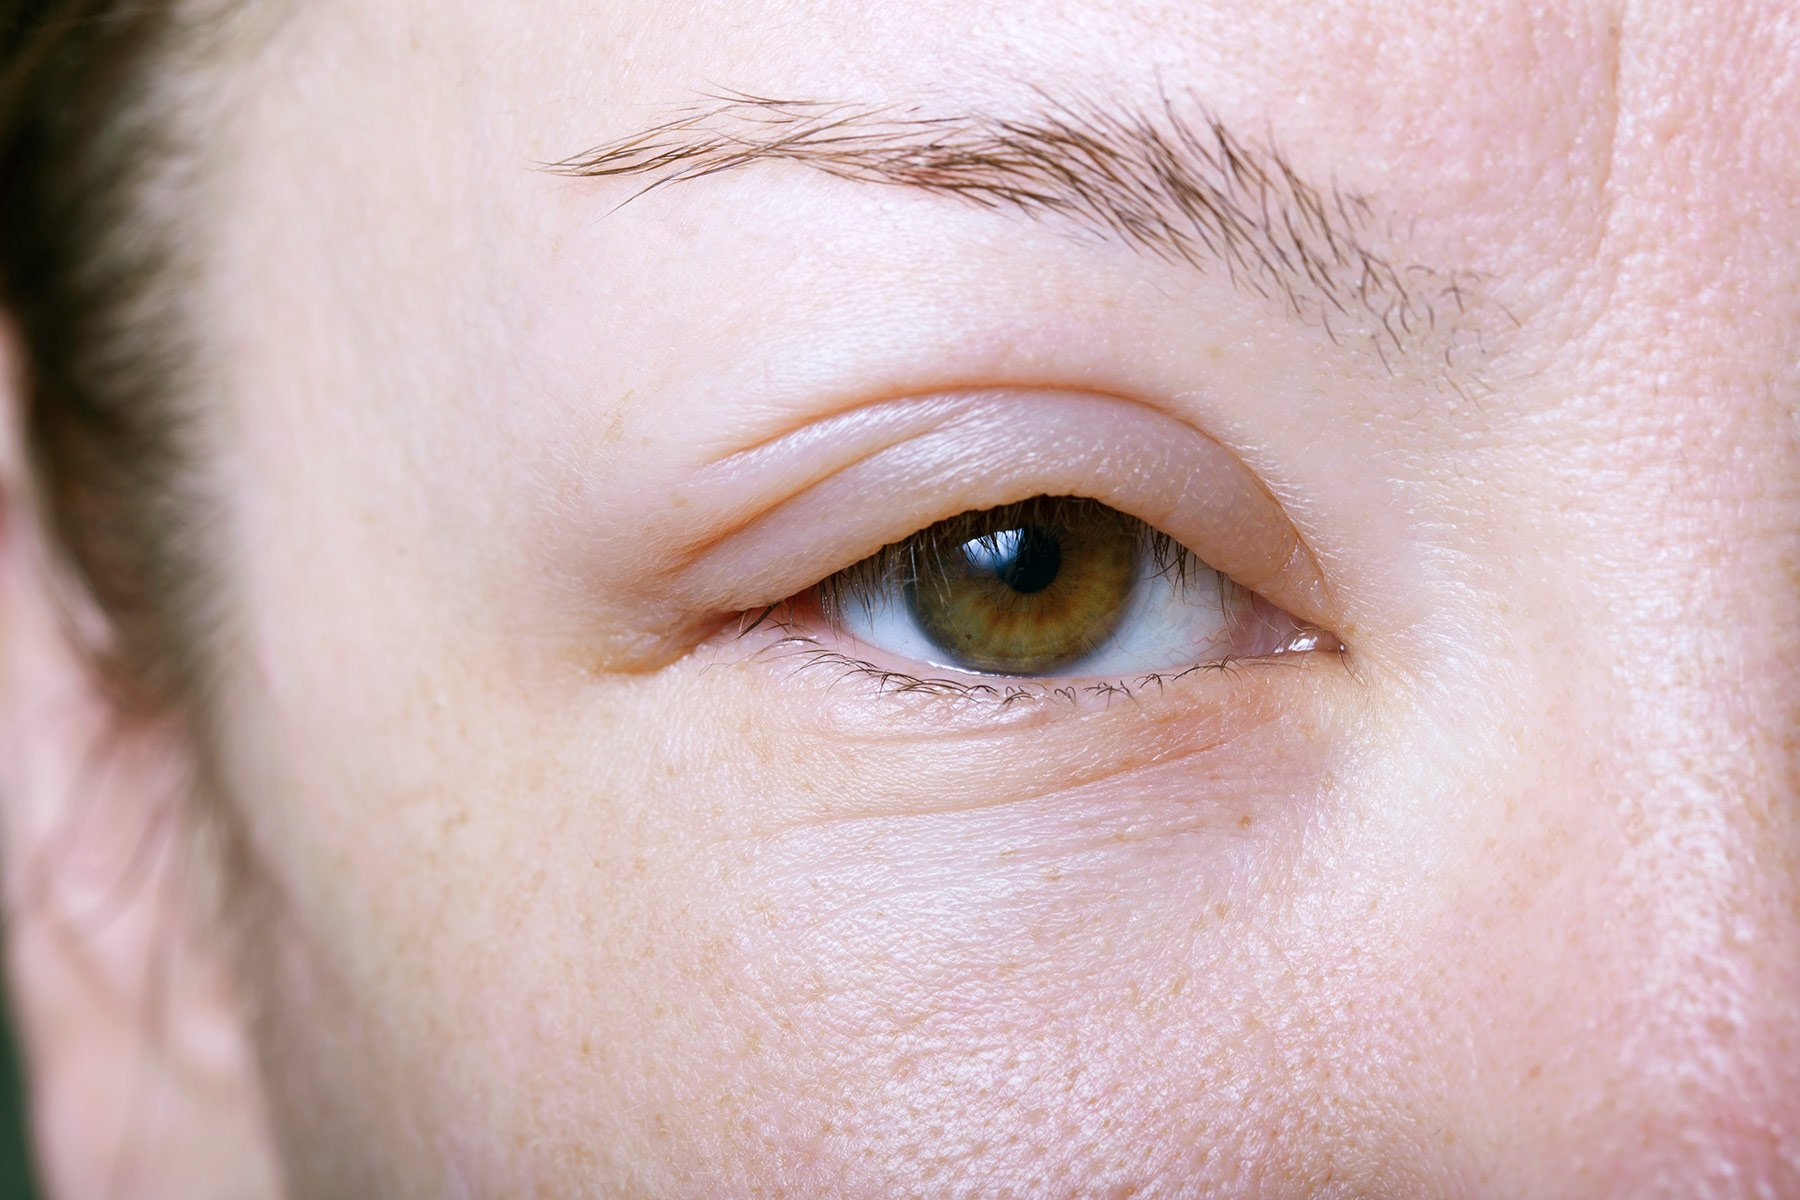 Swollen And Itchy Eyes After Taking The Drug?